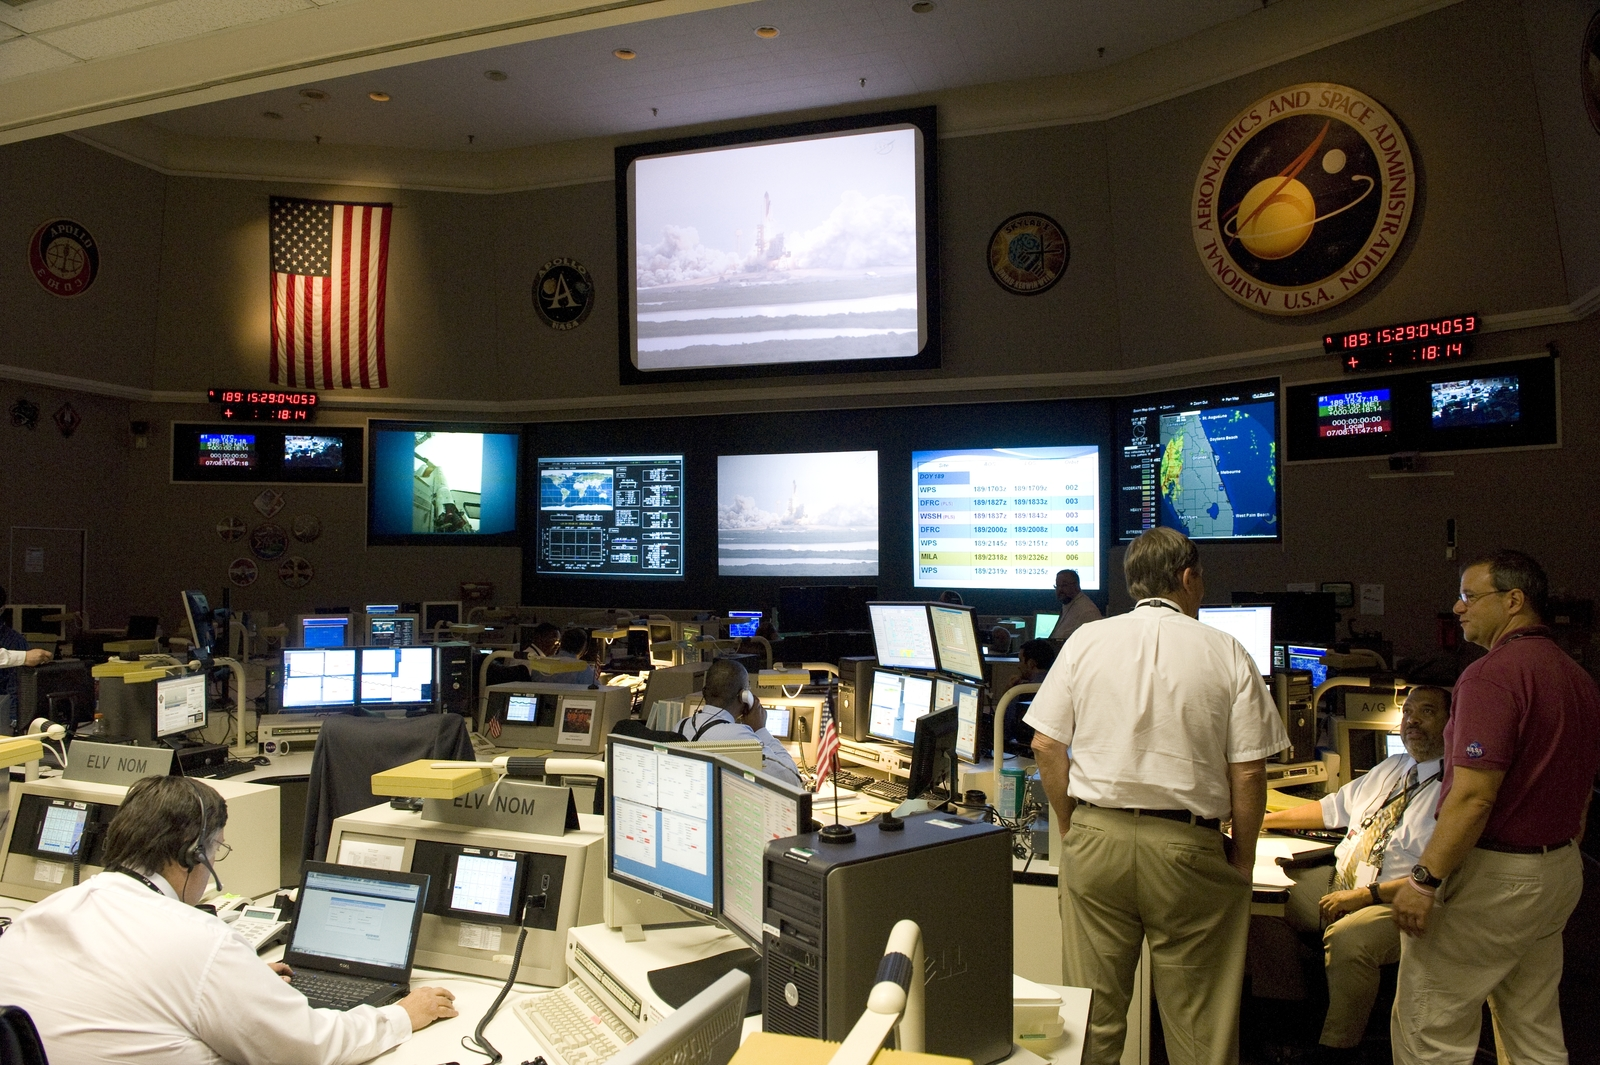 SPACE SHUTTLE STS-135 LAUNCH AND LANDING COMMUNICATION TEAM IN THE NETWORK INTEGRATION CENTER GODDARD SPACE FLIGHT CENTER